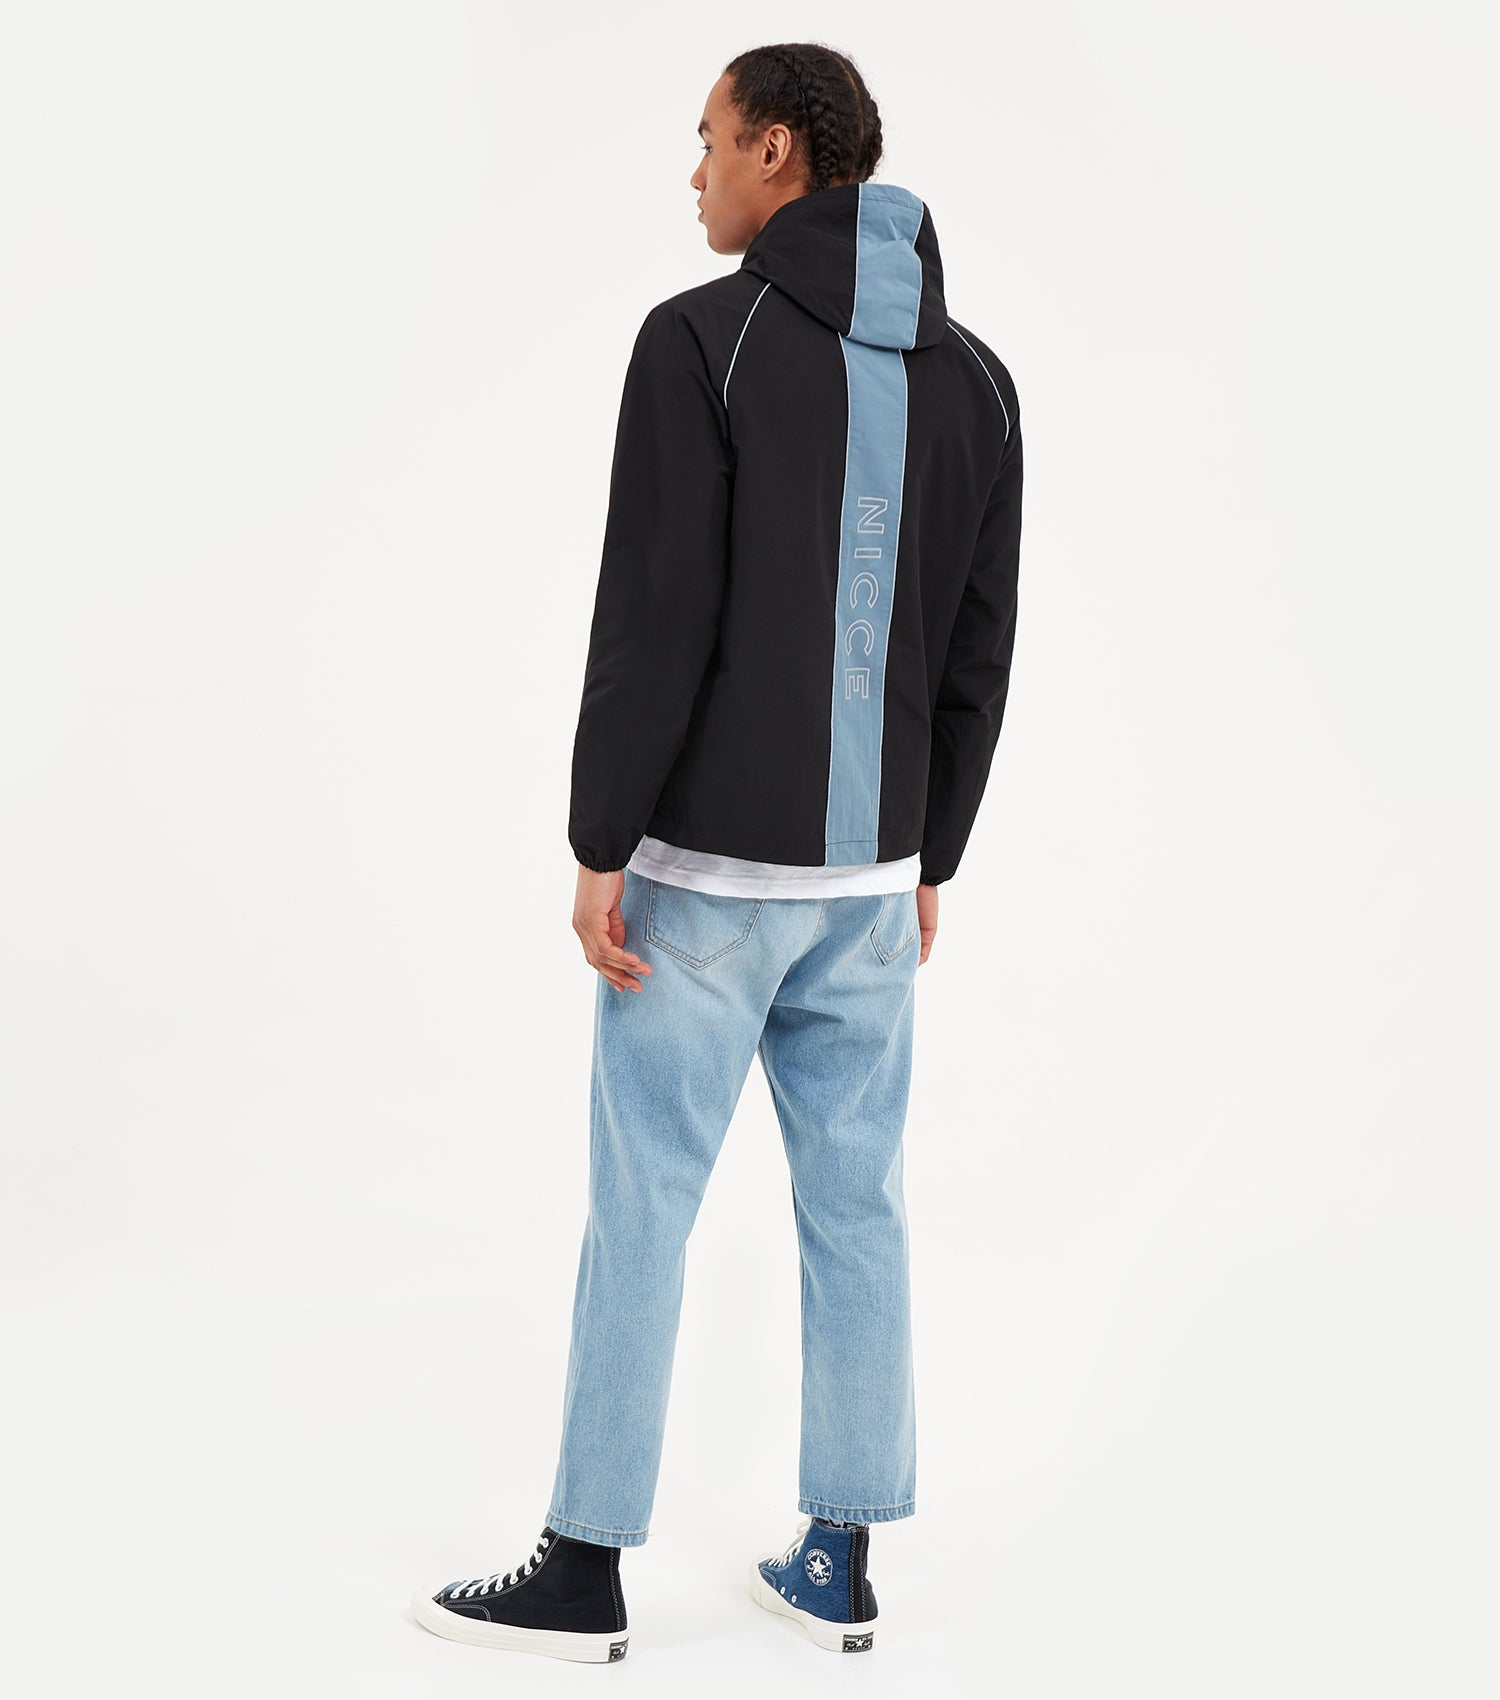 NICCE Mens Linear Jacket | Black/Blue Mirage, Outerwear